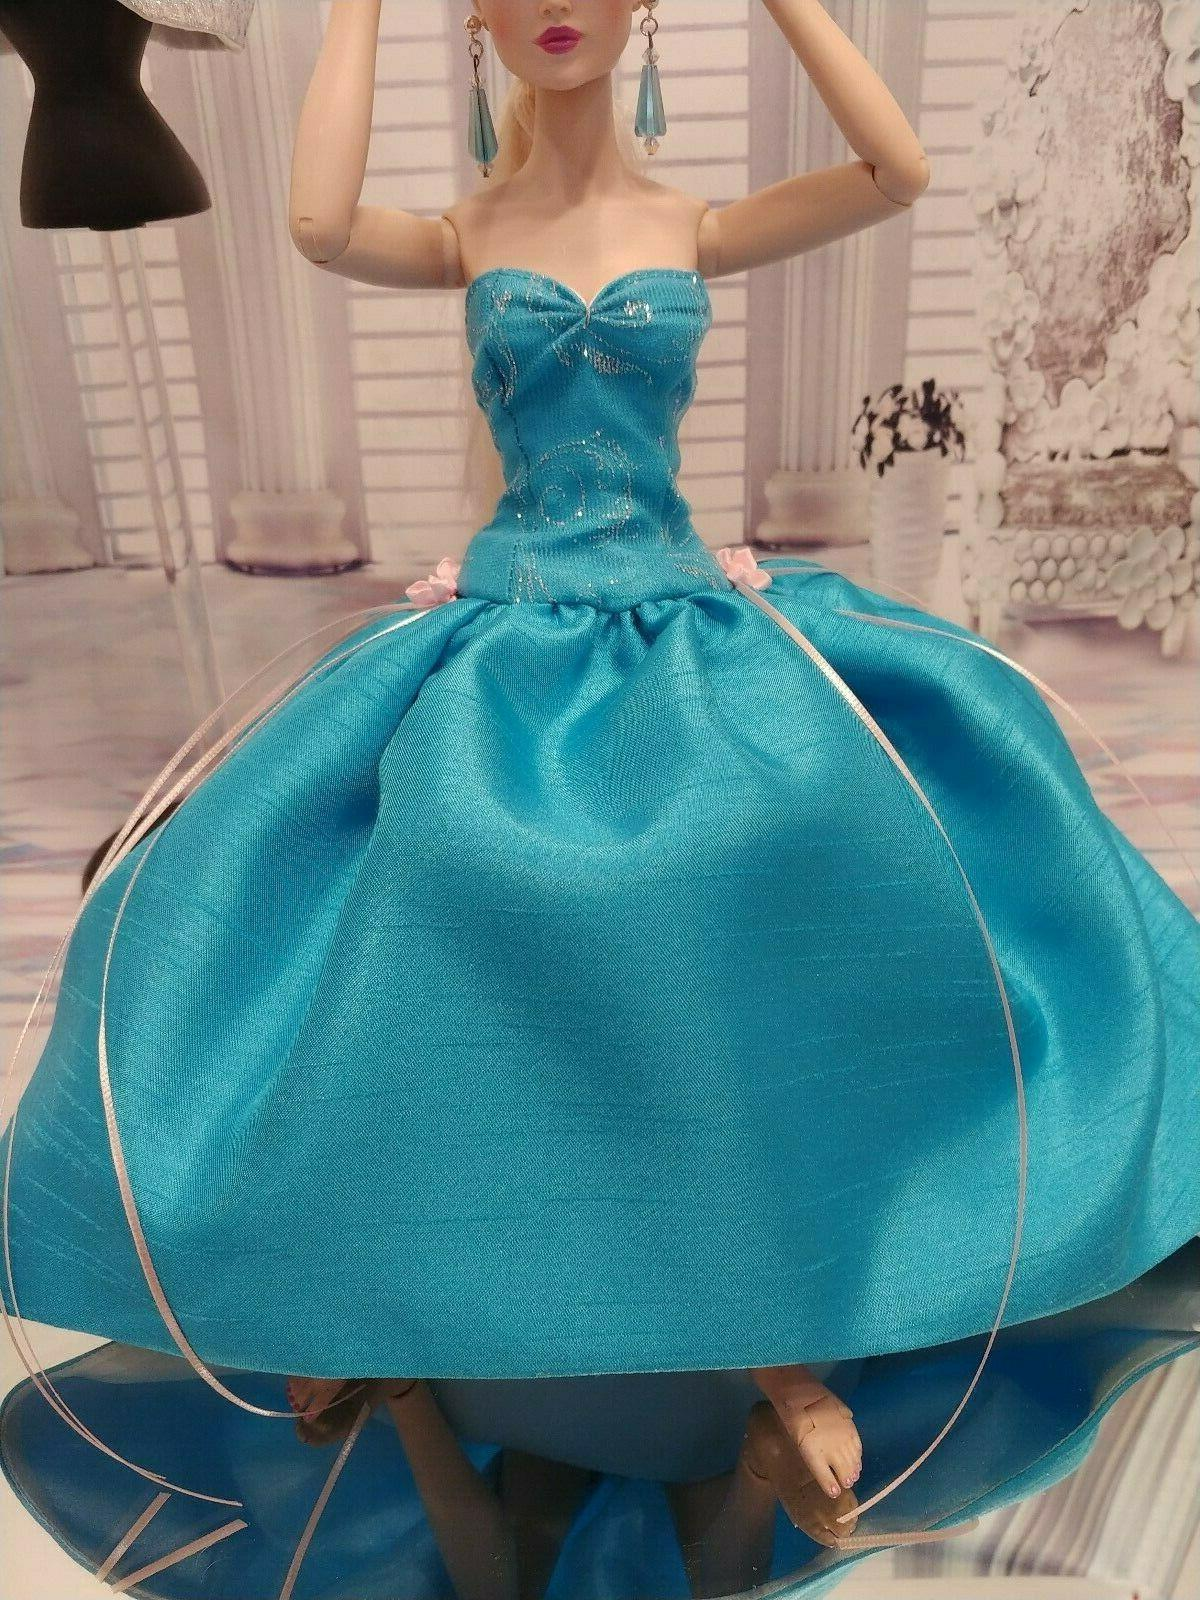 OOAK 16 doll With